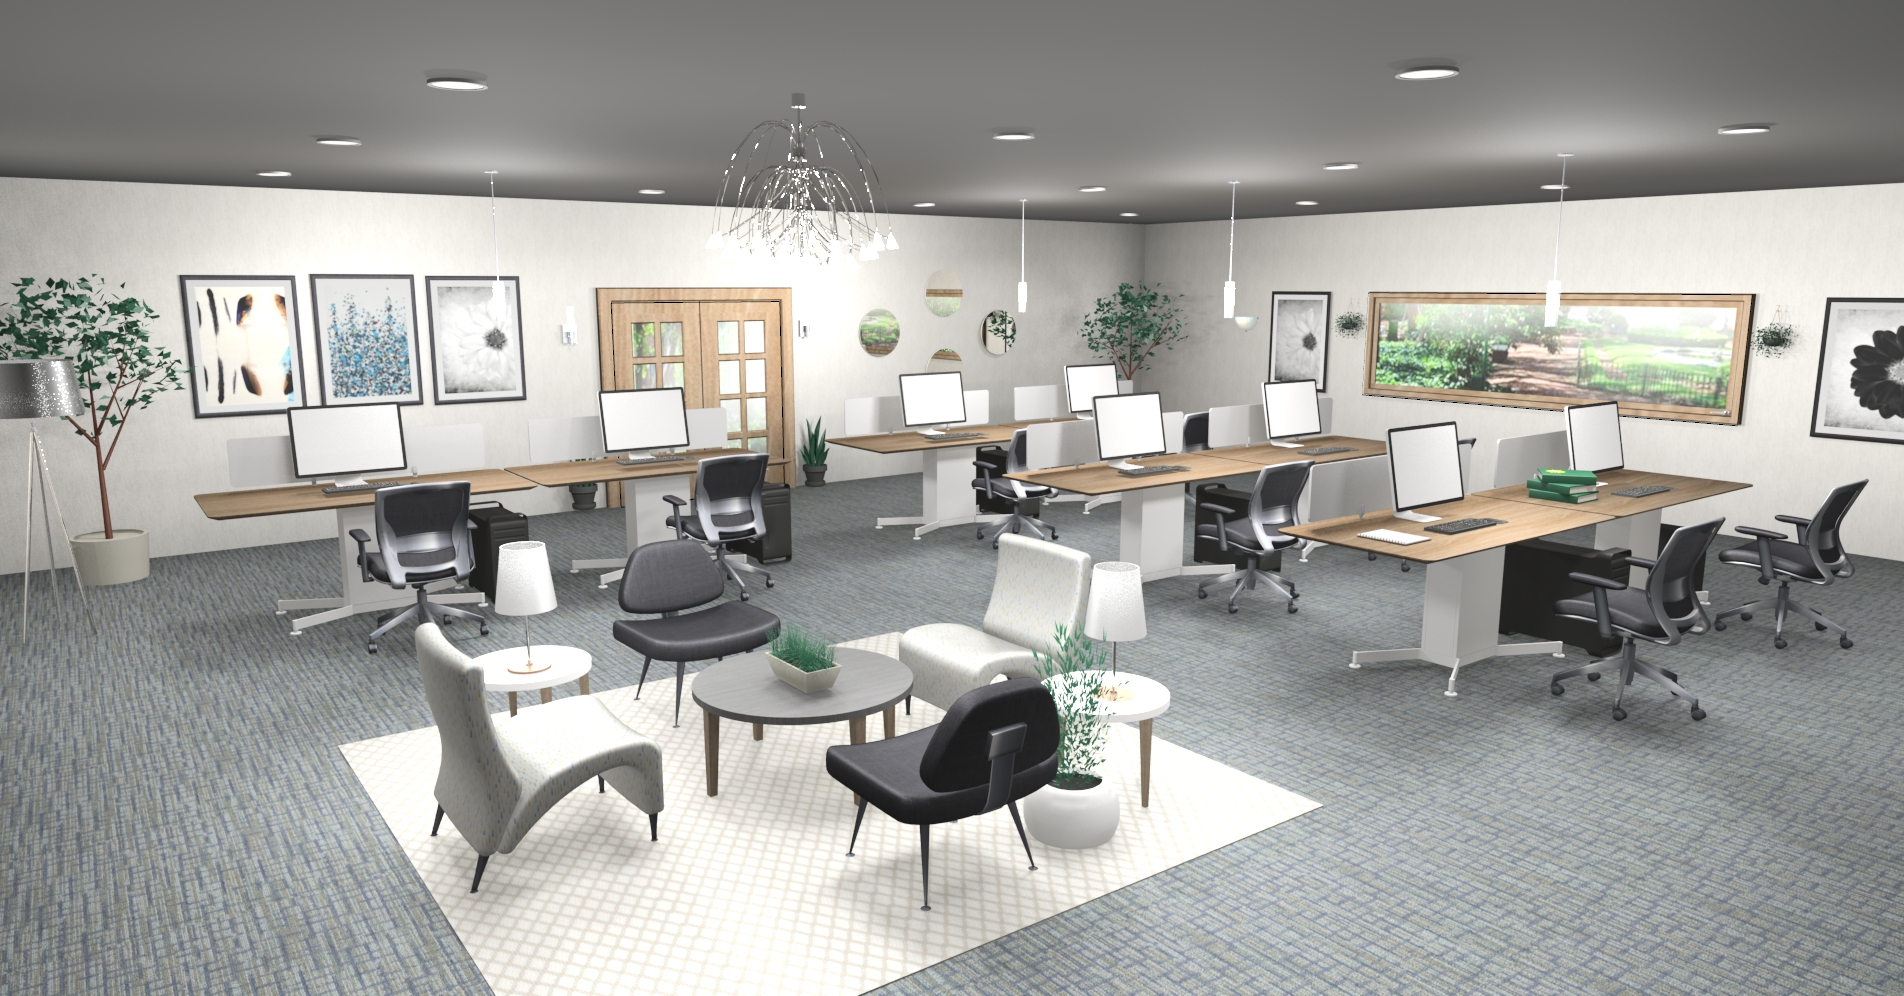 2020 Office Design Trends 2020